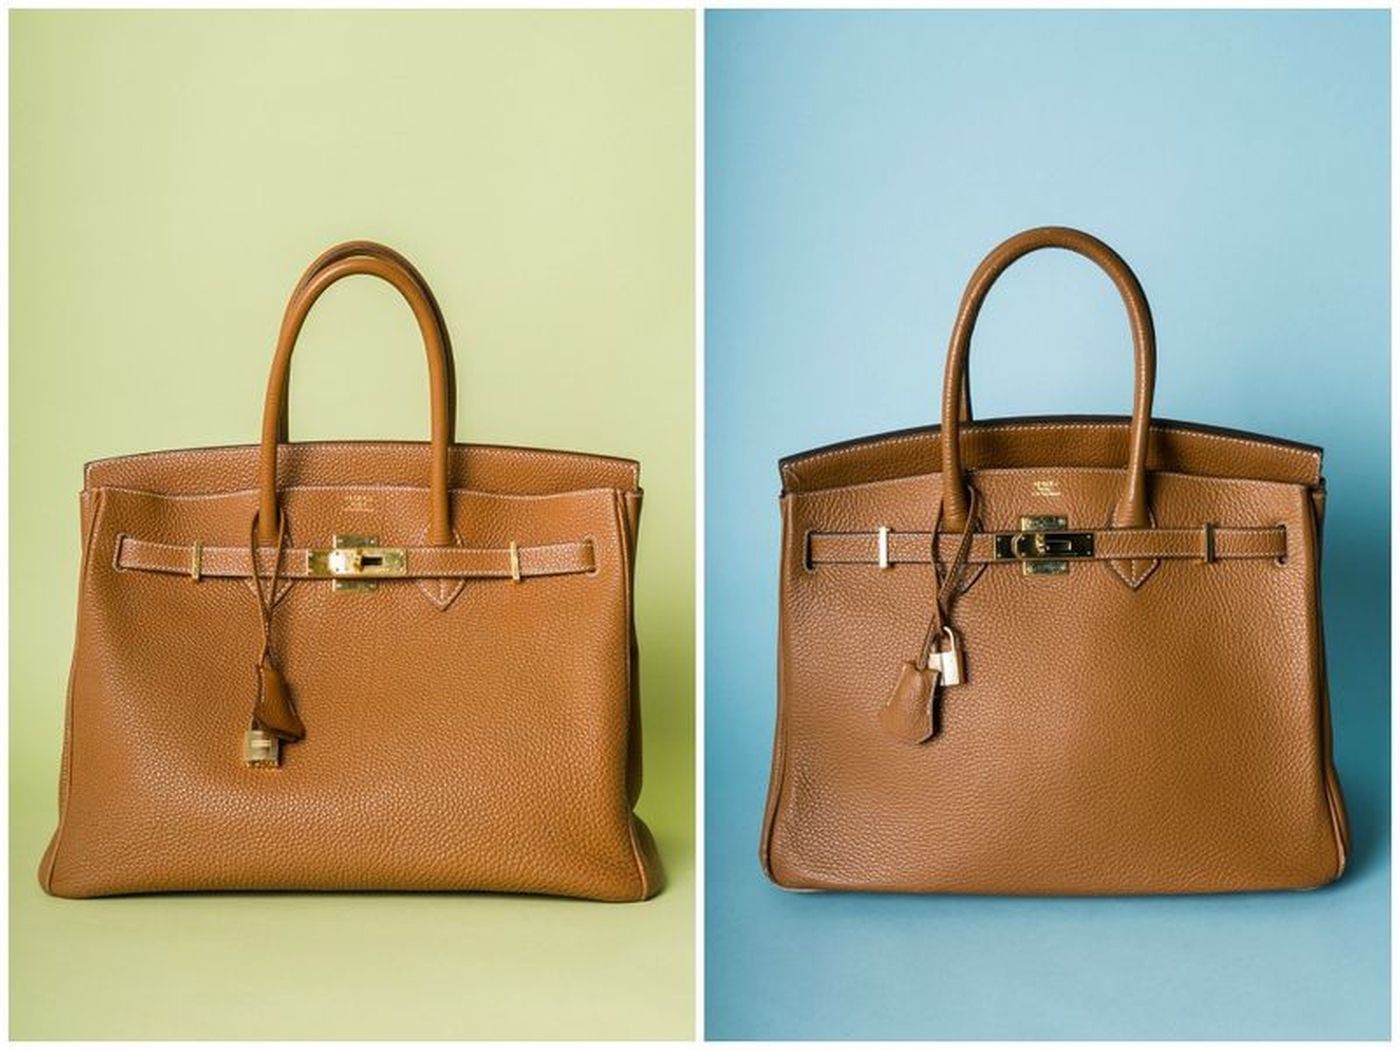 613f673d013 Here's How to Spot the Difference Between Real and Fake Designer Bags -  Racked